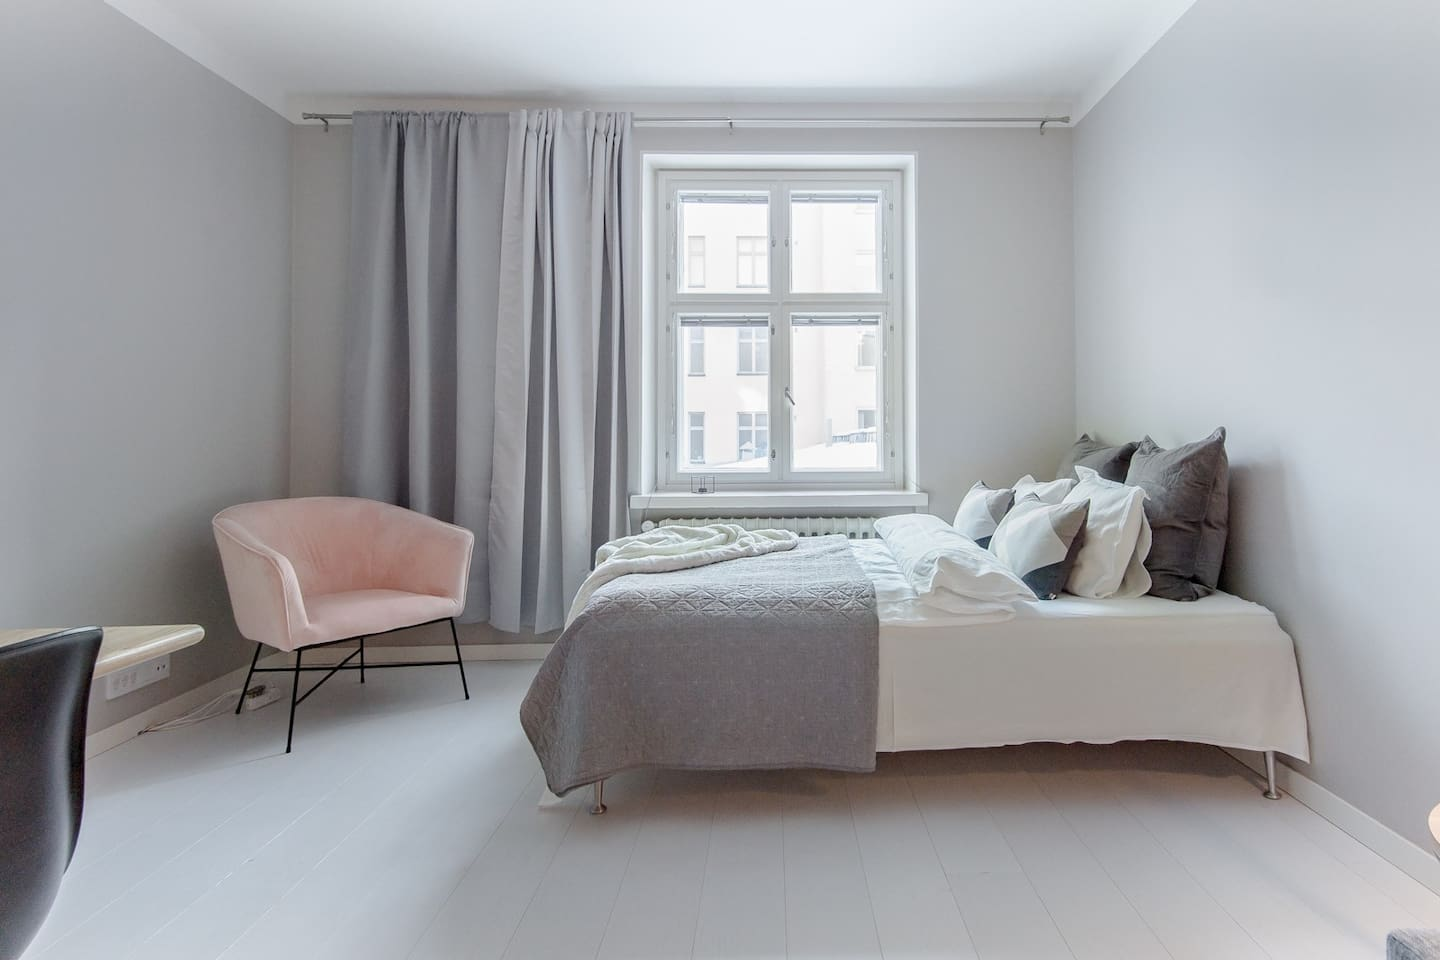 stylish city home apartments for rent in helsinki finland